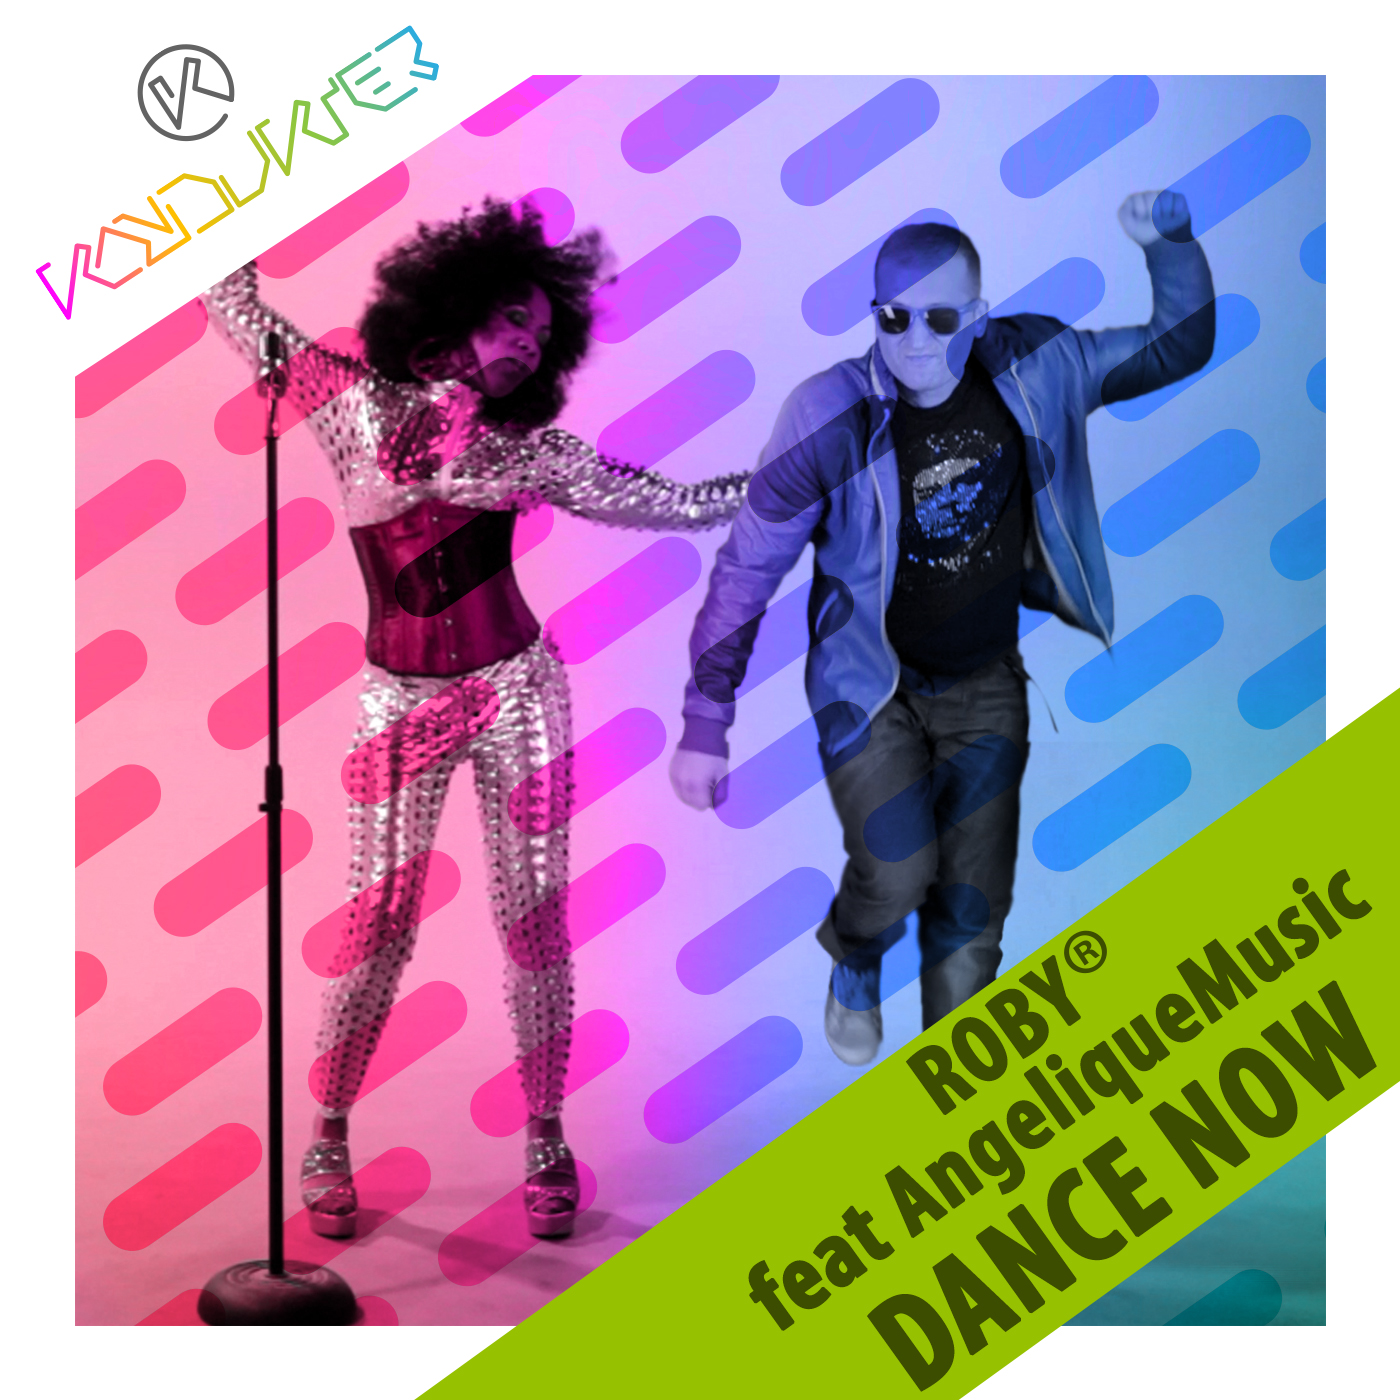 dance now, roby r, angeliquemusic